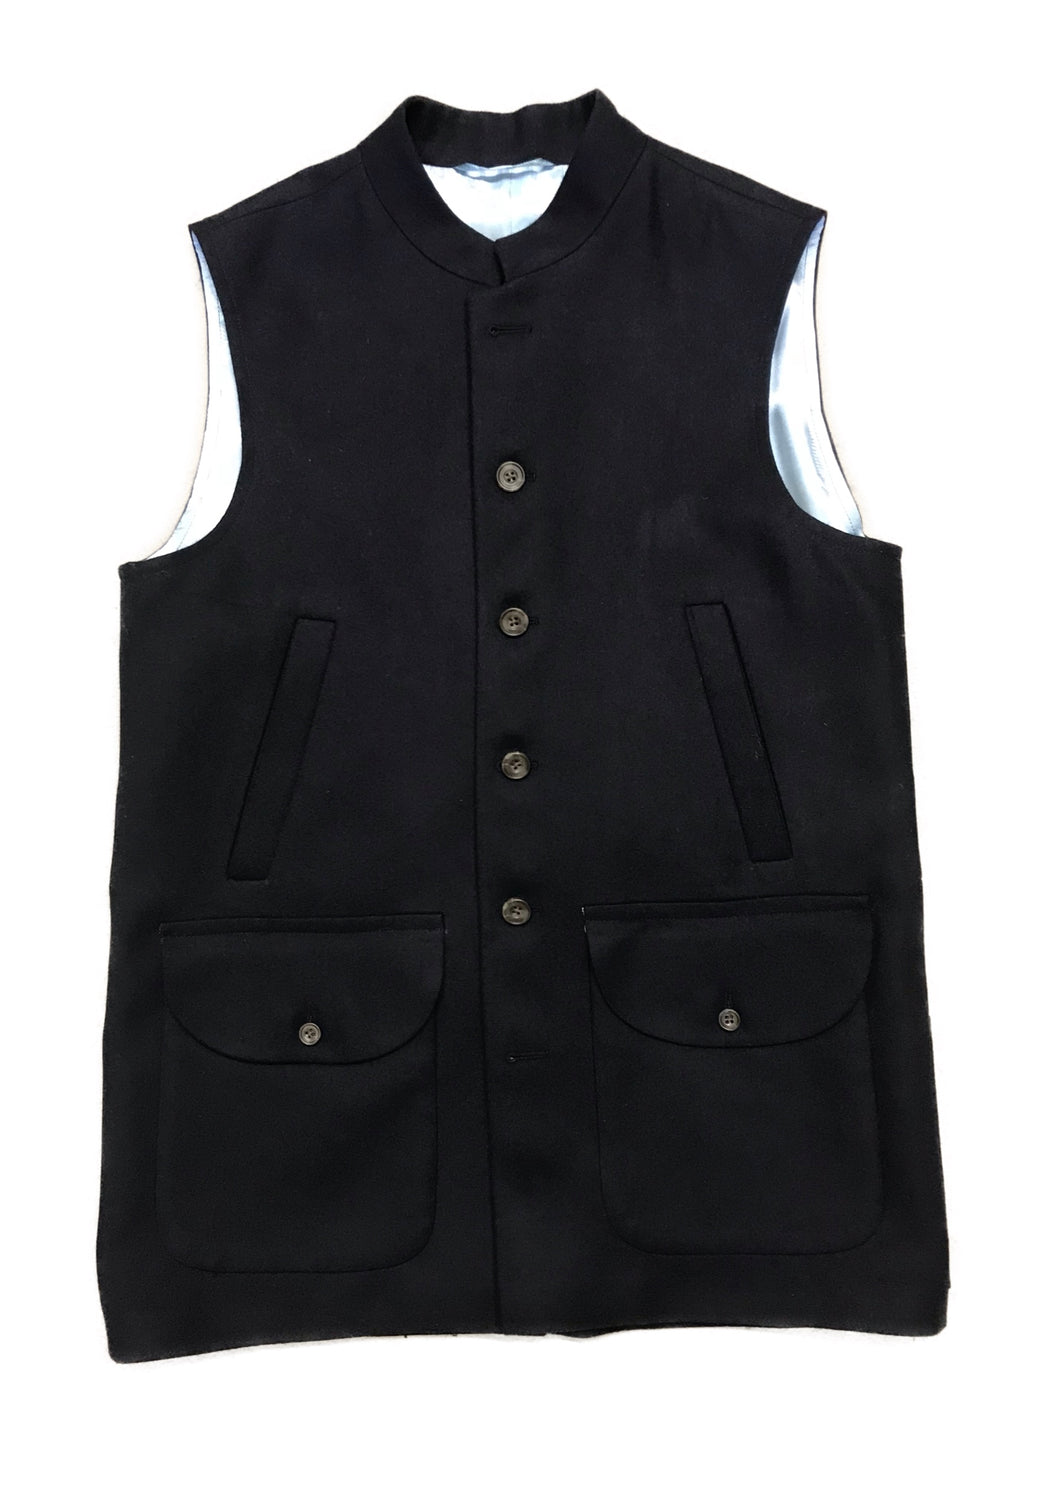 The 'Monty' All purpose gilet